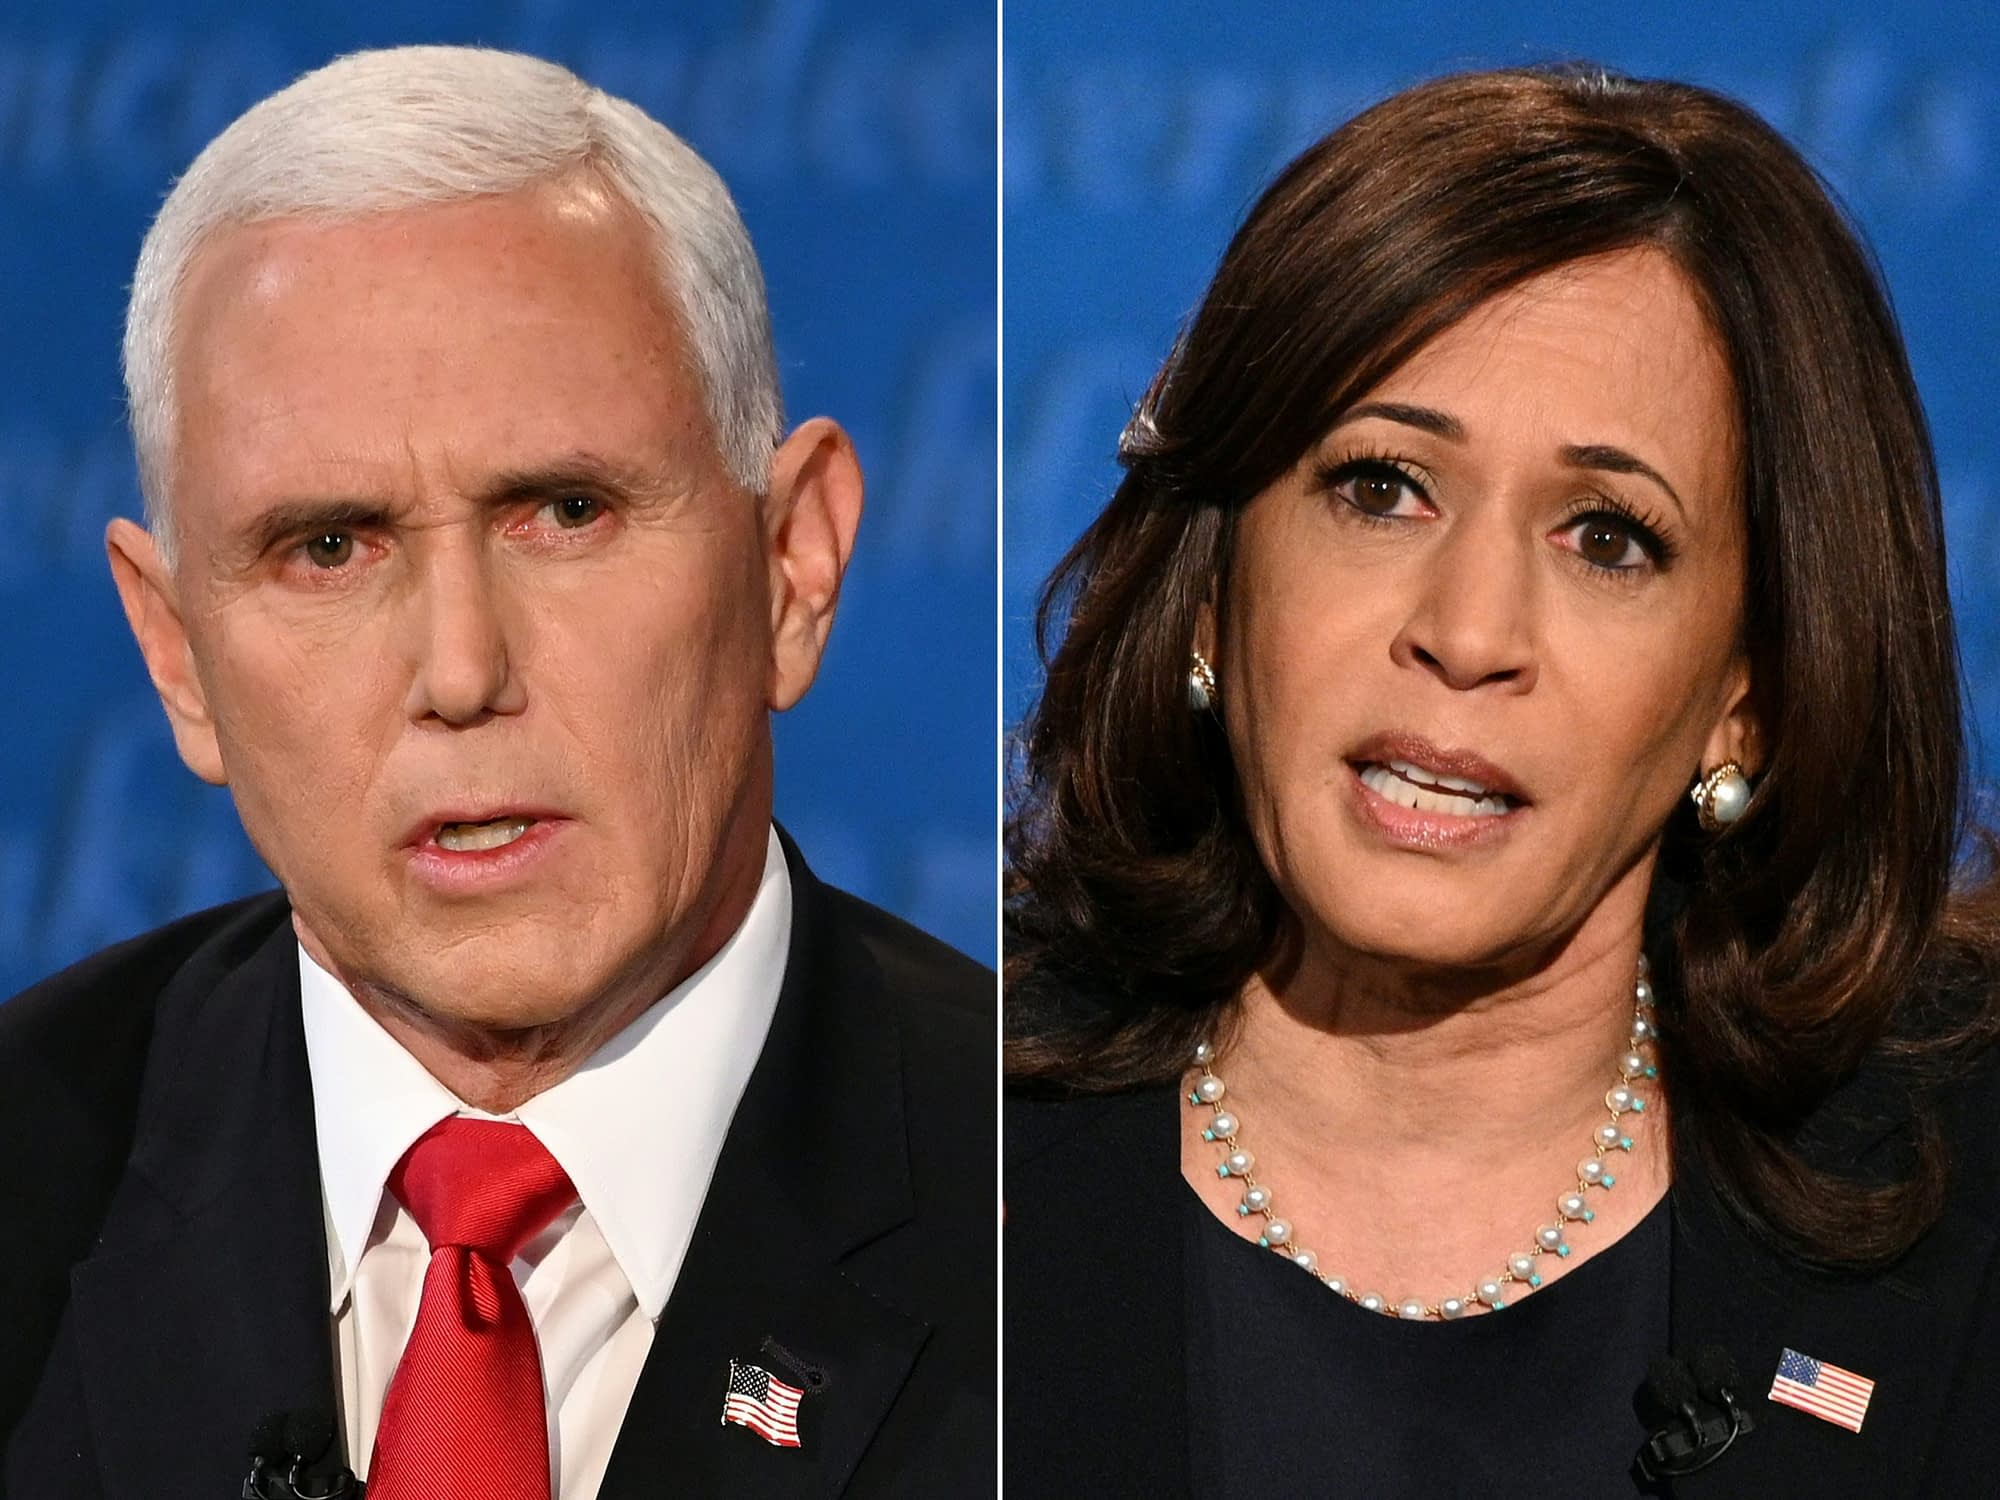 Who Won the Vice Presidential Debate Between Pence and Harris